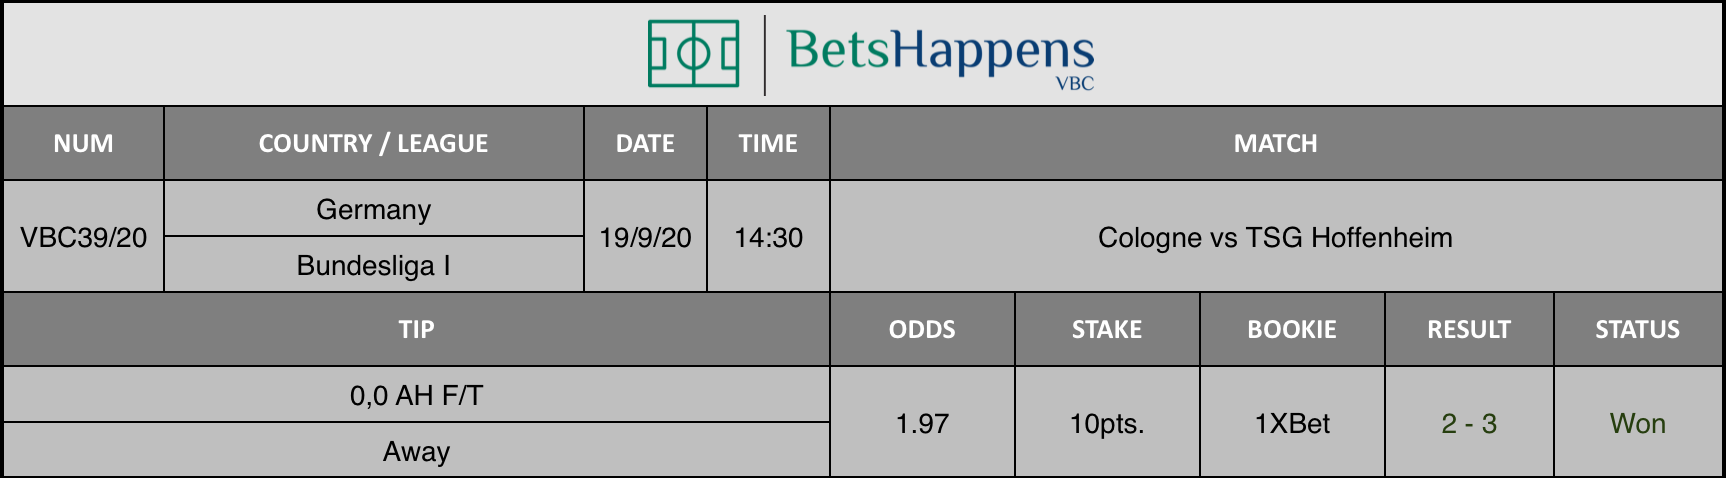 Results of our advice for the Cologne vs TSG Hoffenheim game where 0.0 AH F / T Away is recommended.